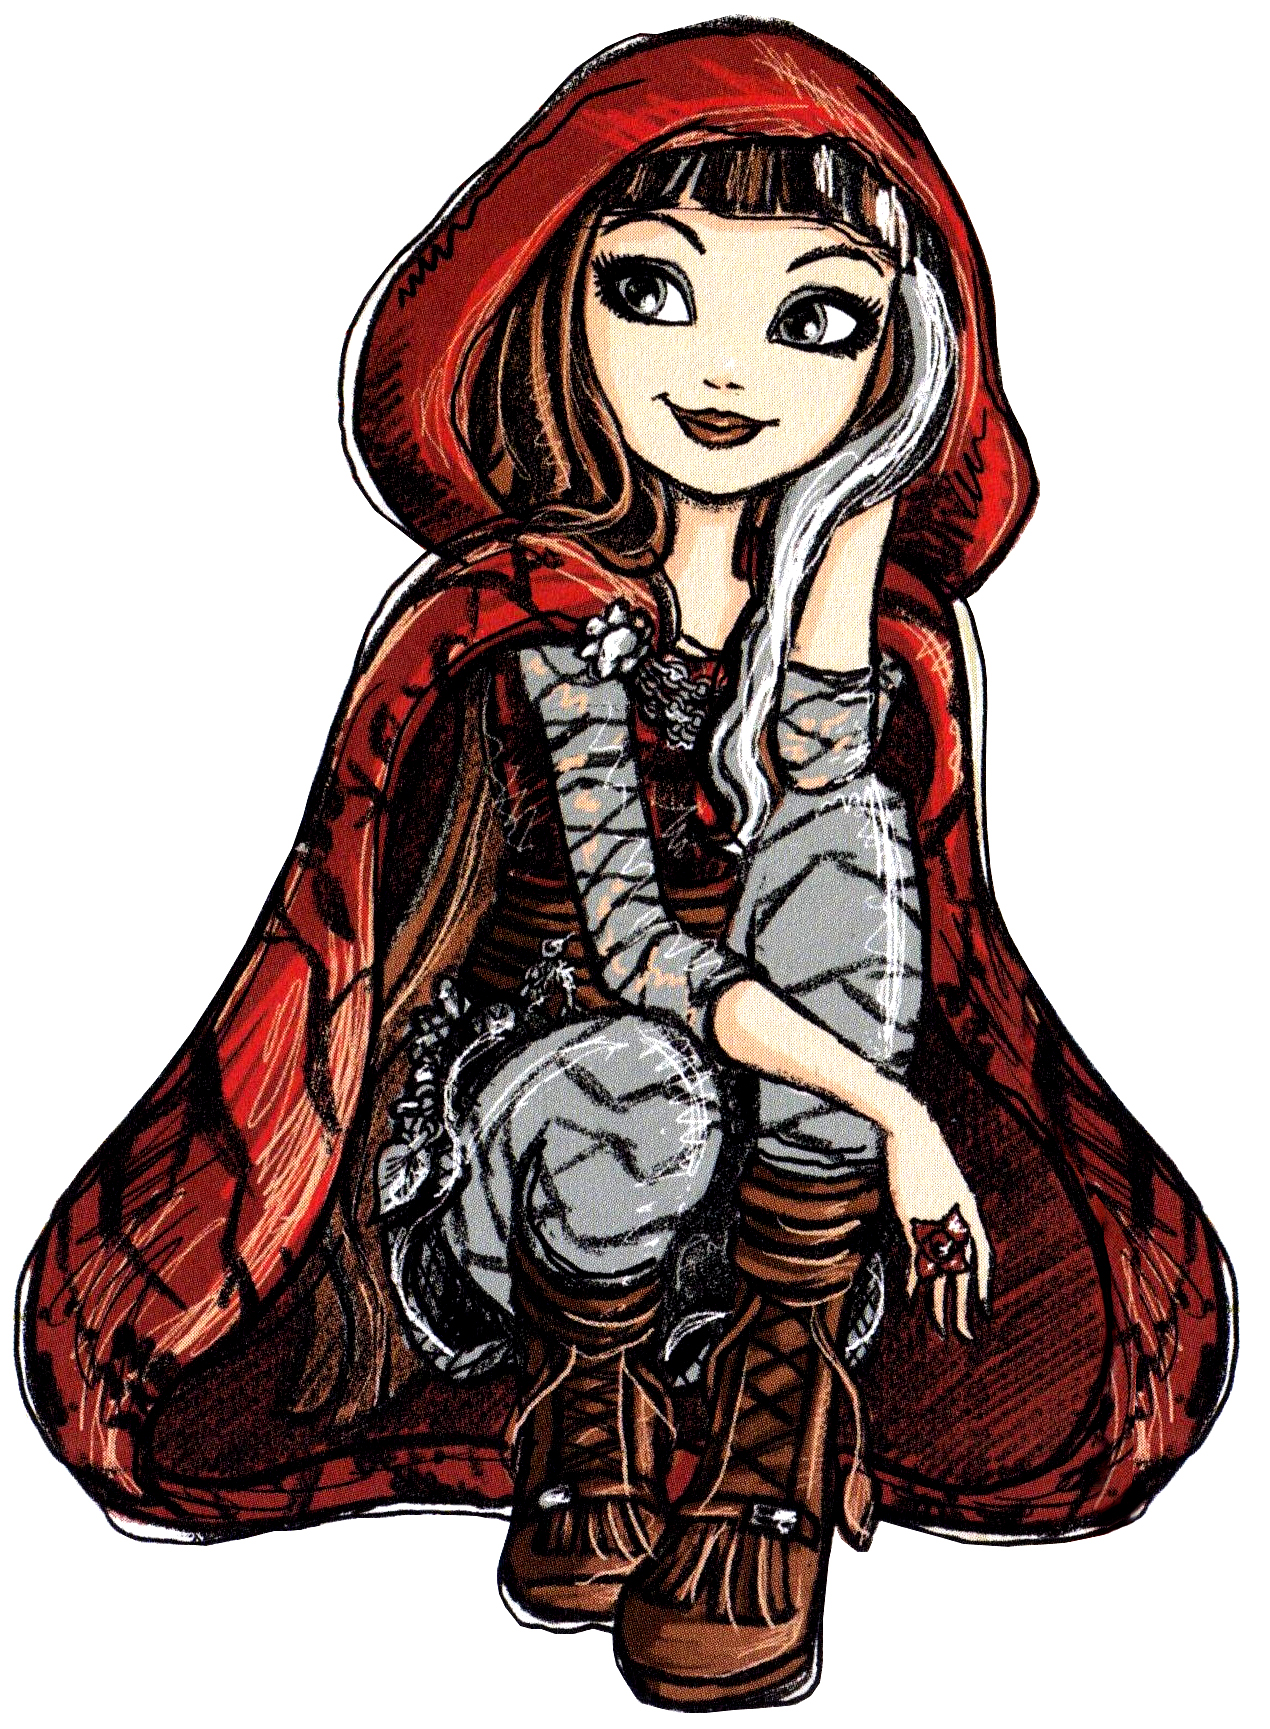 Cerise Hood Drawing At Getdrawings Com Free For Personal Use